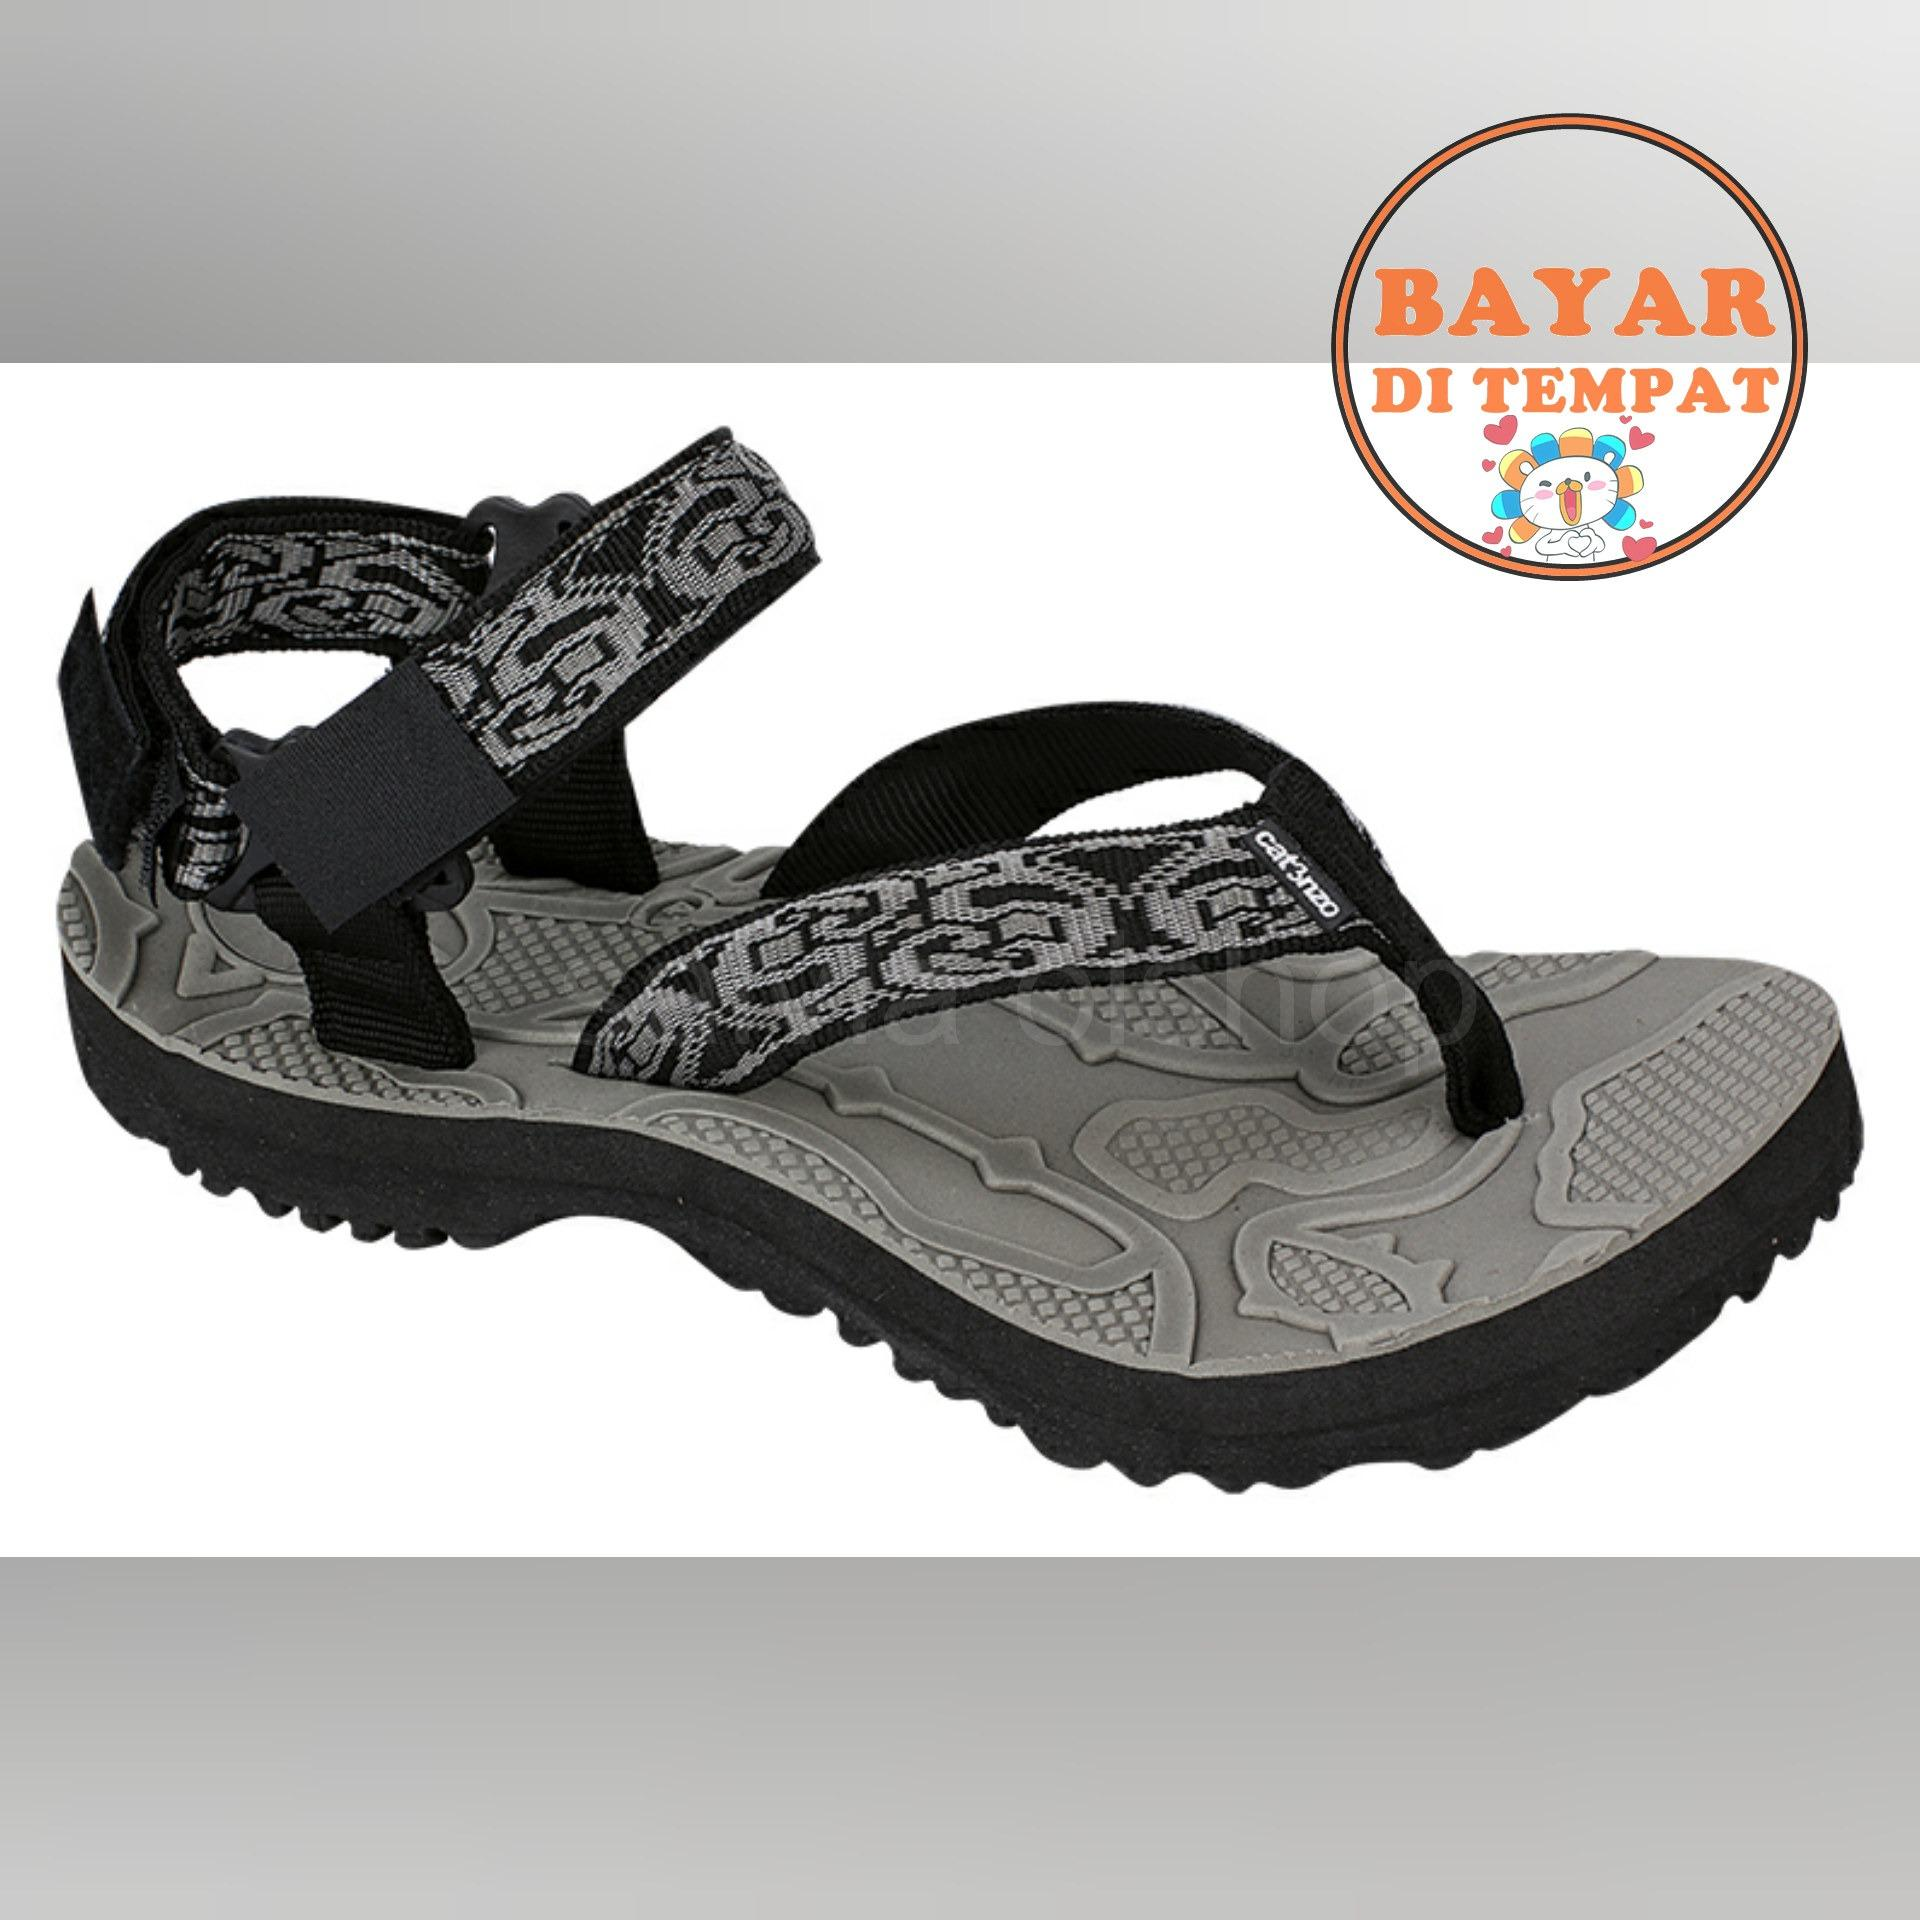 Sabertooth Sandal Gunung Traventure Intera Blushenta Size 32 Sd 47 Spectra All Series S D